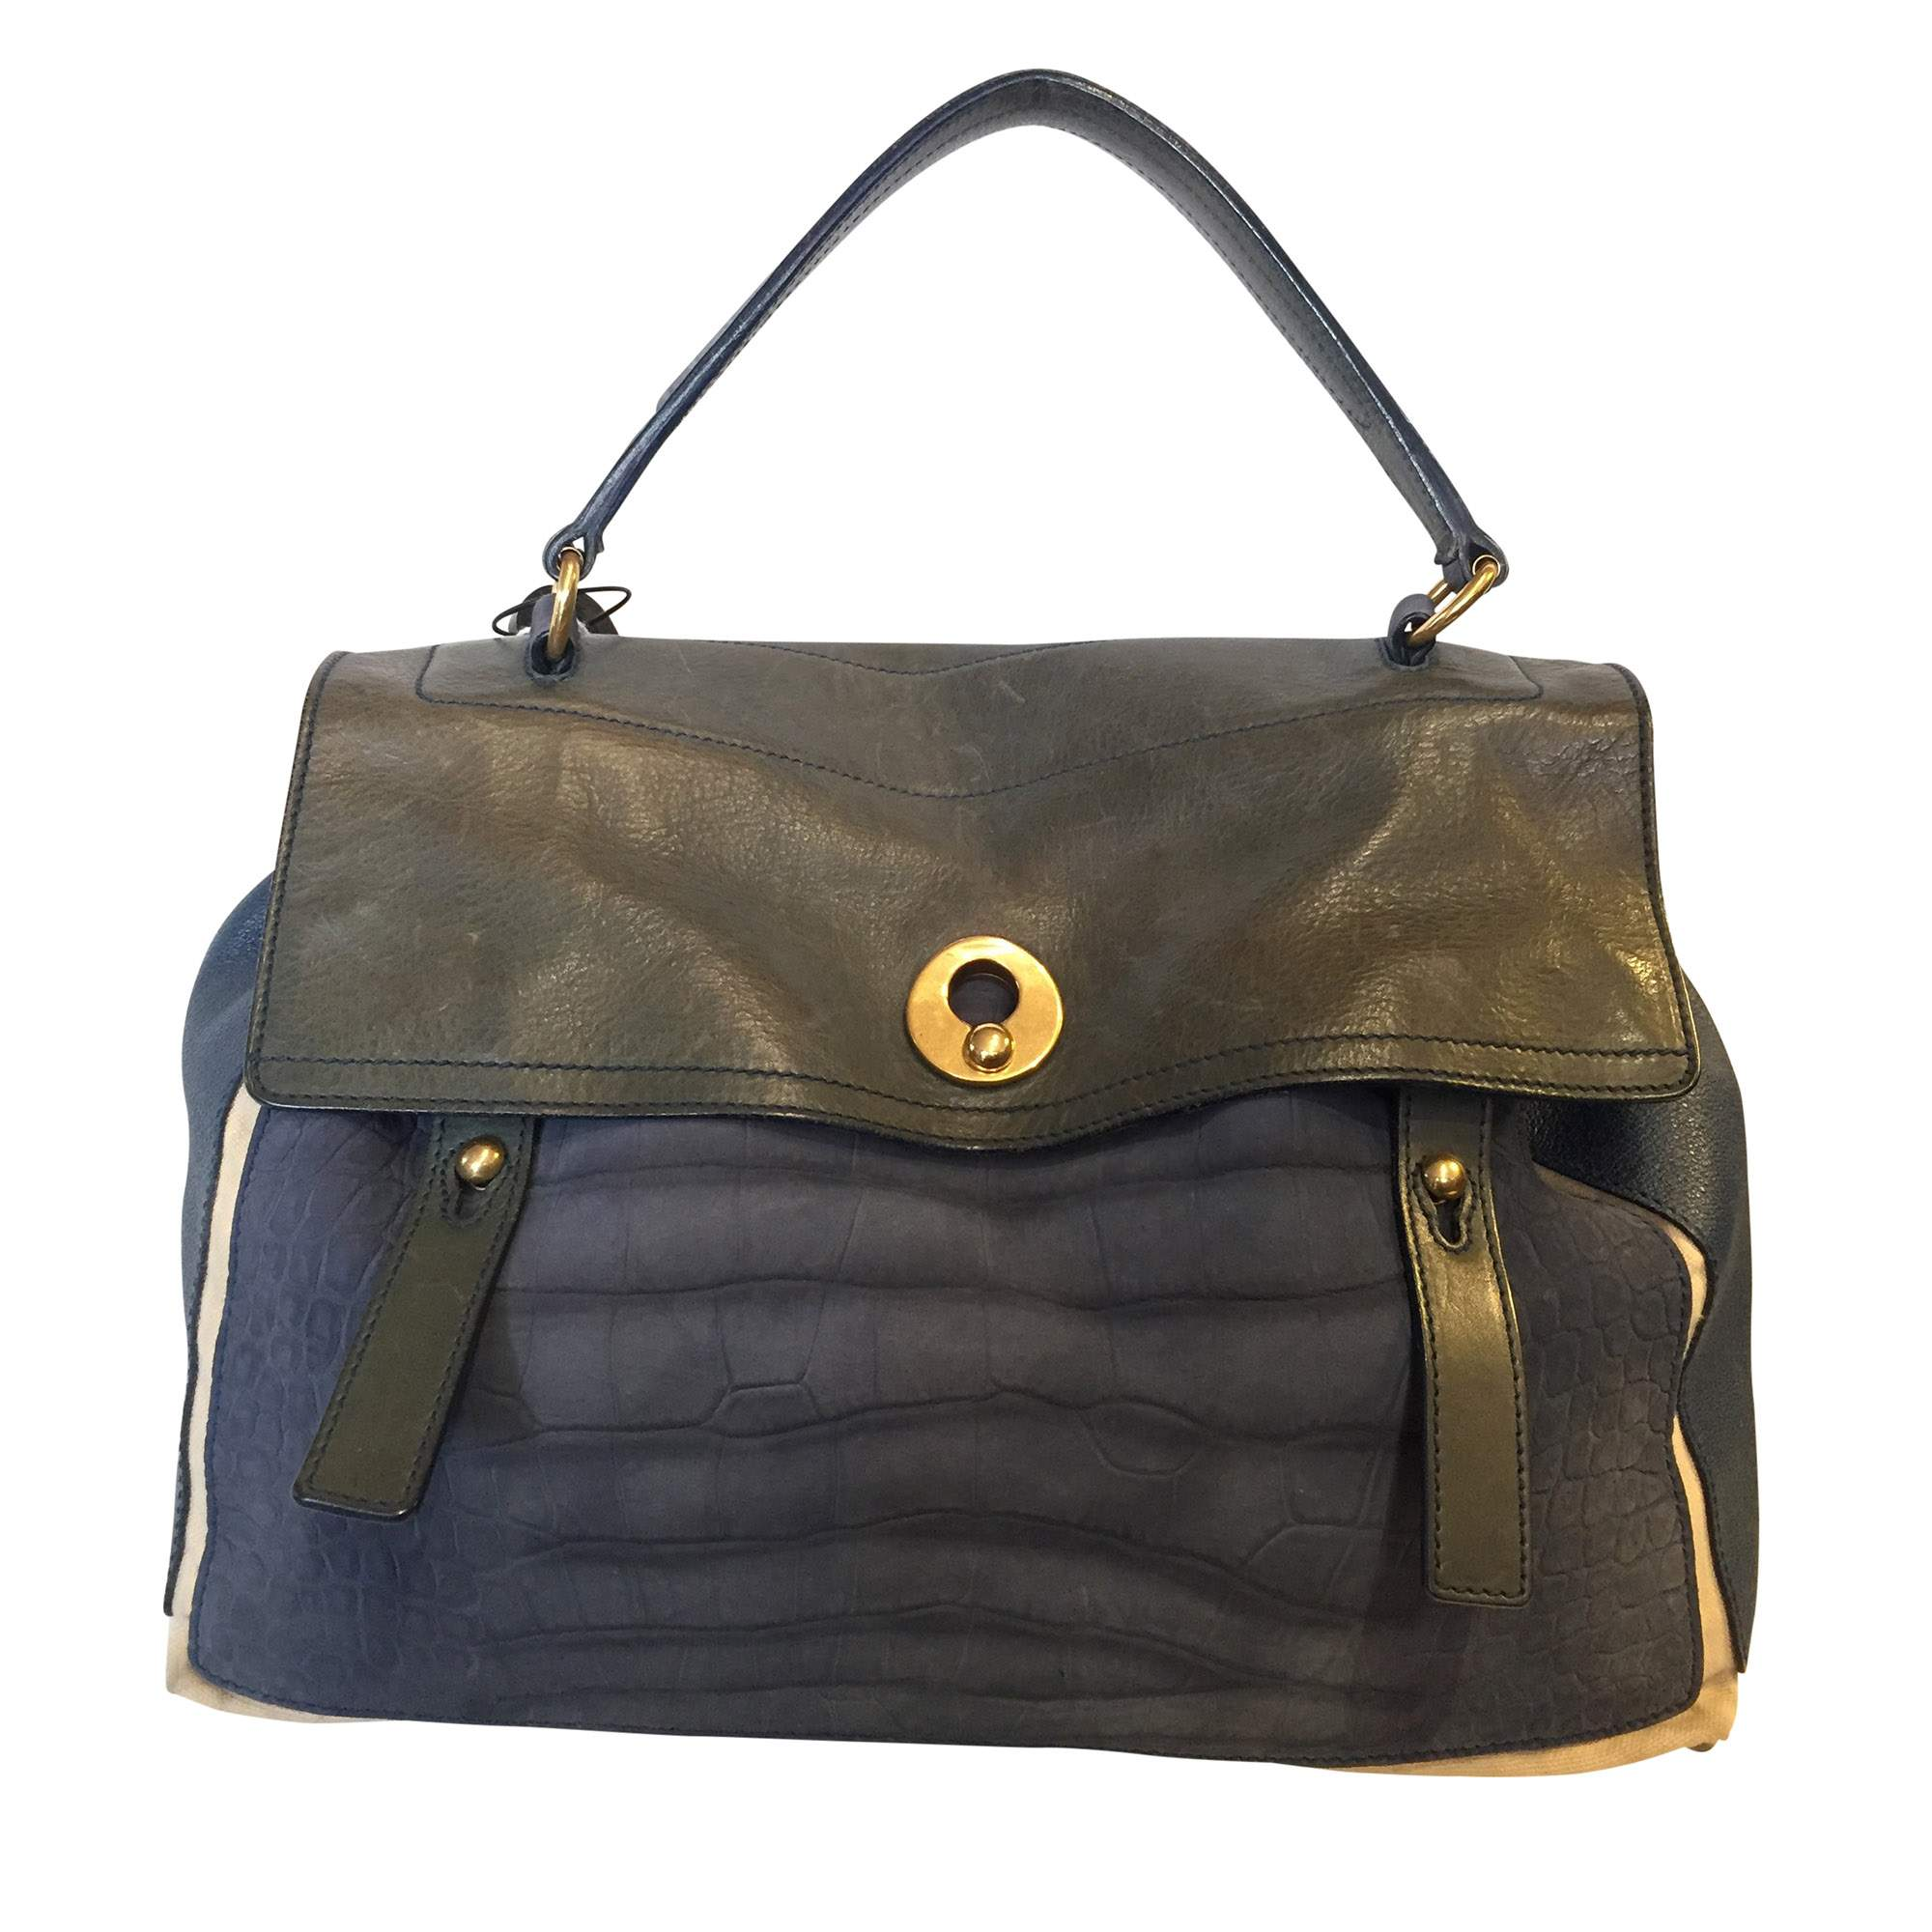 4b387f7e295 St Laurent Muse two Bag   The Chic Selection